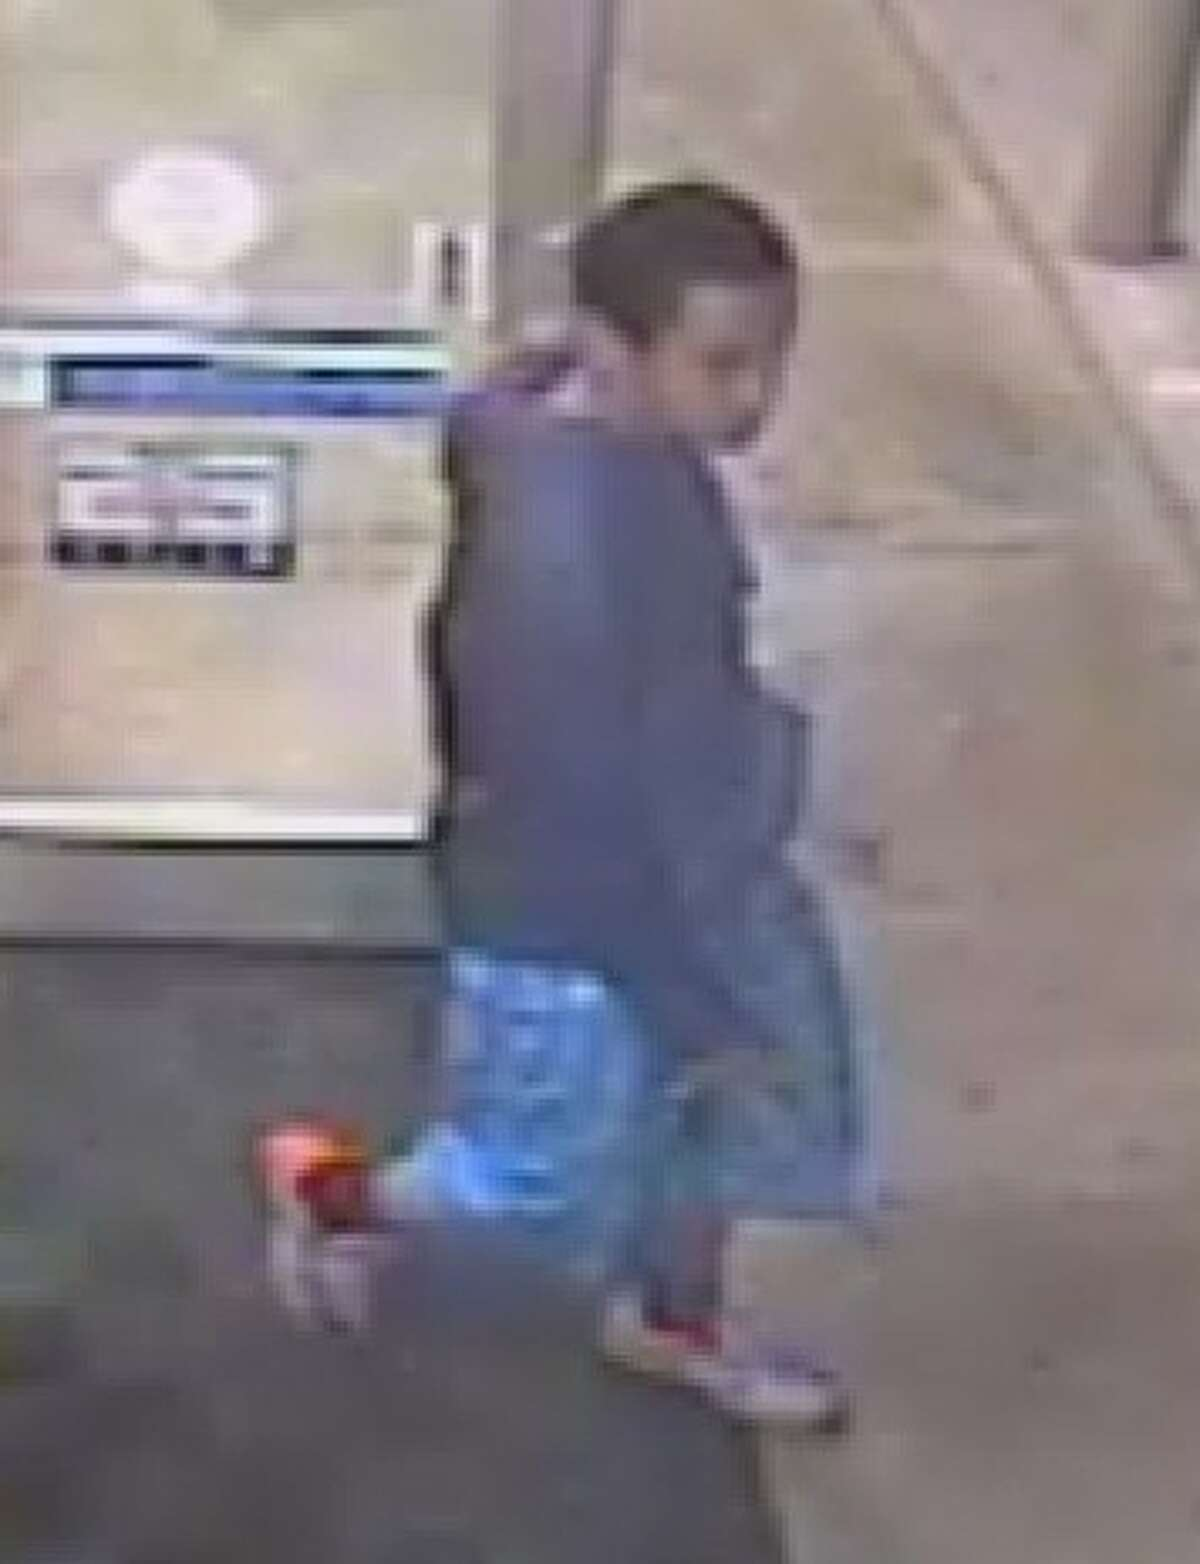 Video footage of one of the two suspects sought by authorites for an aggravated assault case at a Food Mart Exxon, located at 17130 Beechnut St. in the Mission Bend area, where they pulled out a gun and fired multiple shots at two people with whom they had a conflict.